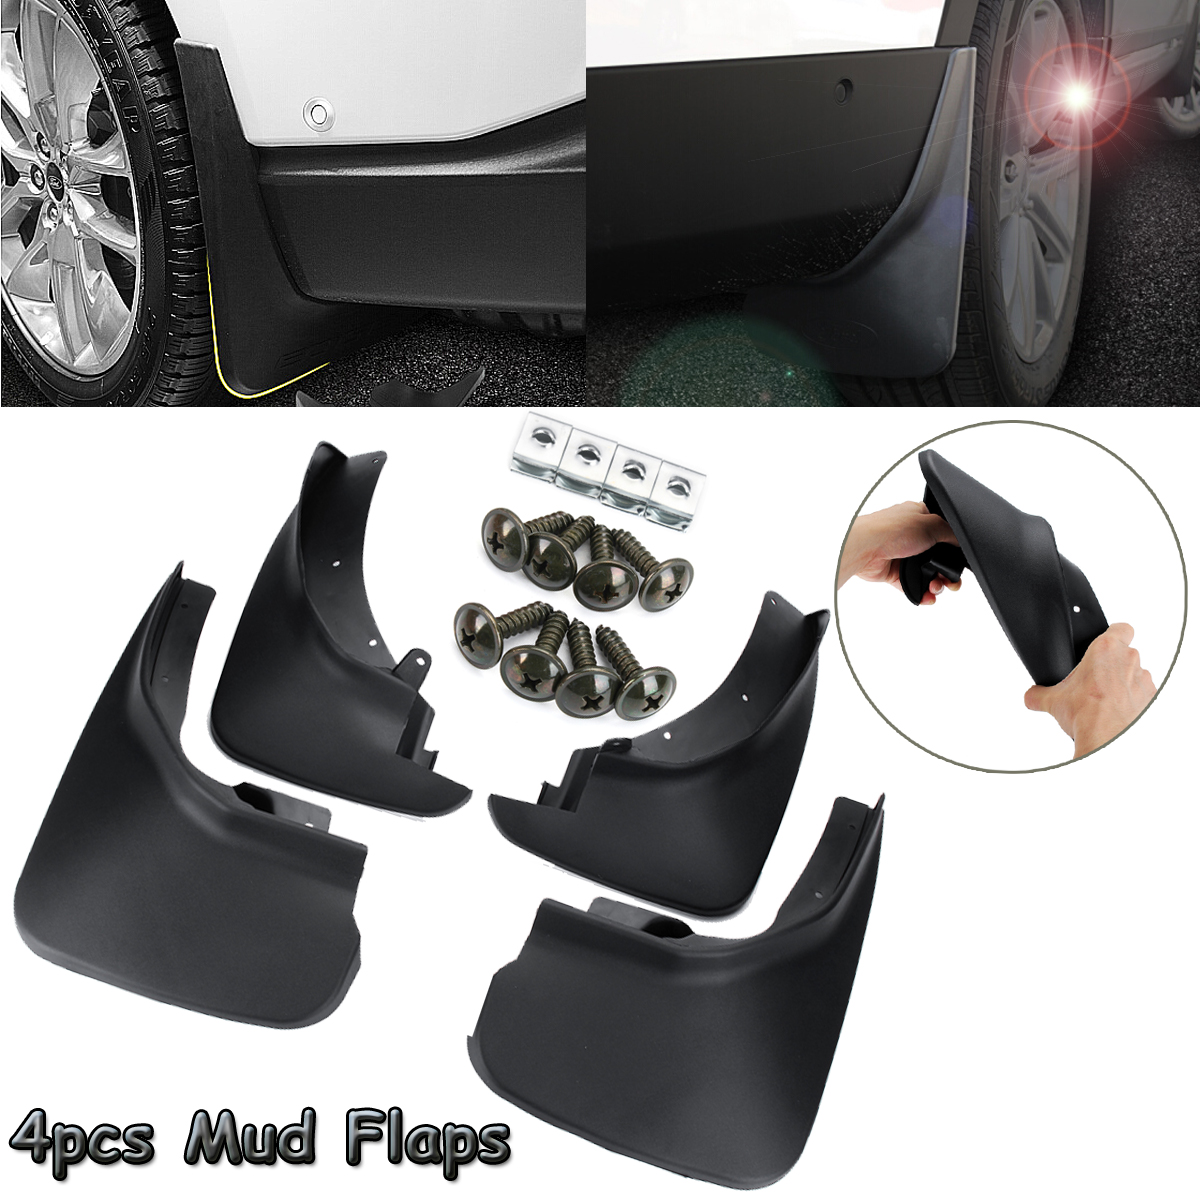 4pcs Car Front Rear Fender Flares Splash Guards Mud Flaps Mudguards Mudflaps for Ford Explorer 2011